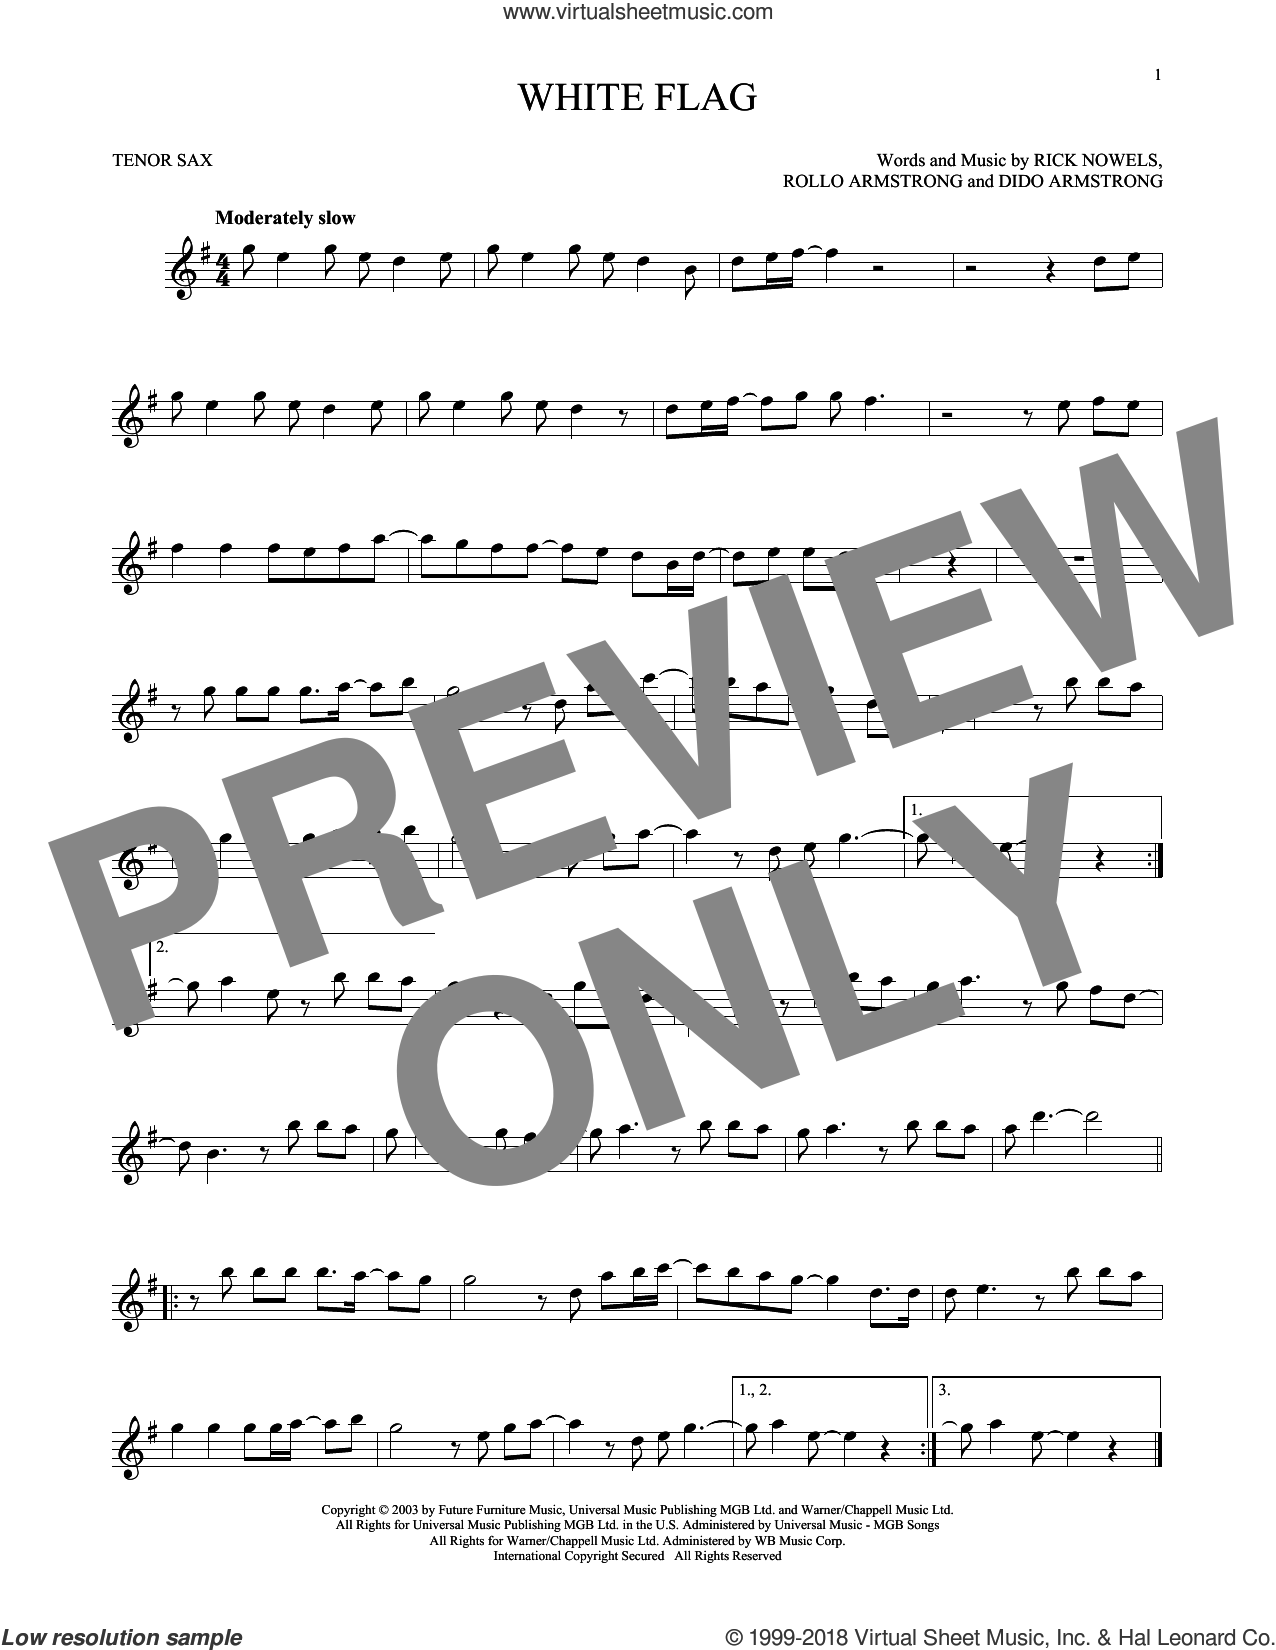 White Flag sheet music for tenor saxophone solo by Rollo Armstrong, Dido Armstrong and Rick Nowels. Score Image Preview.